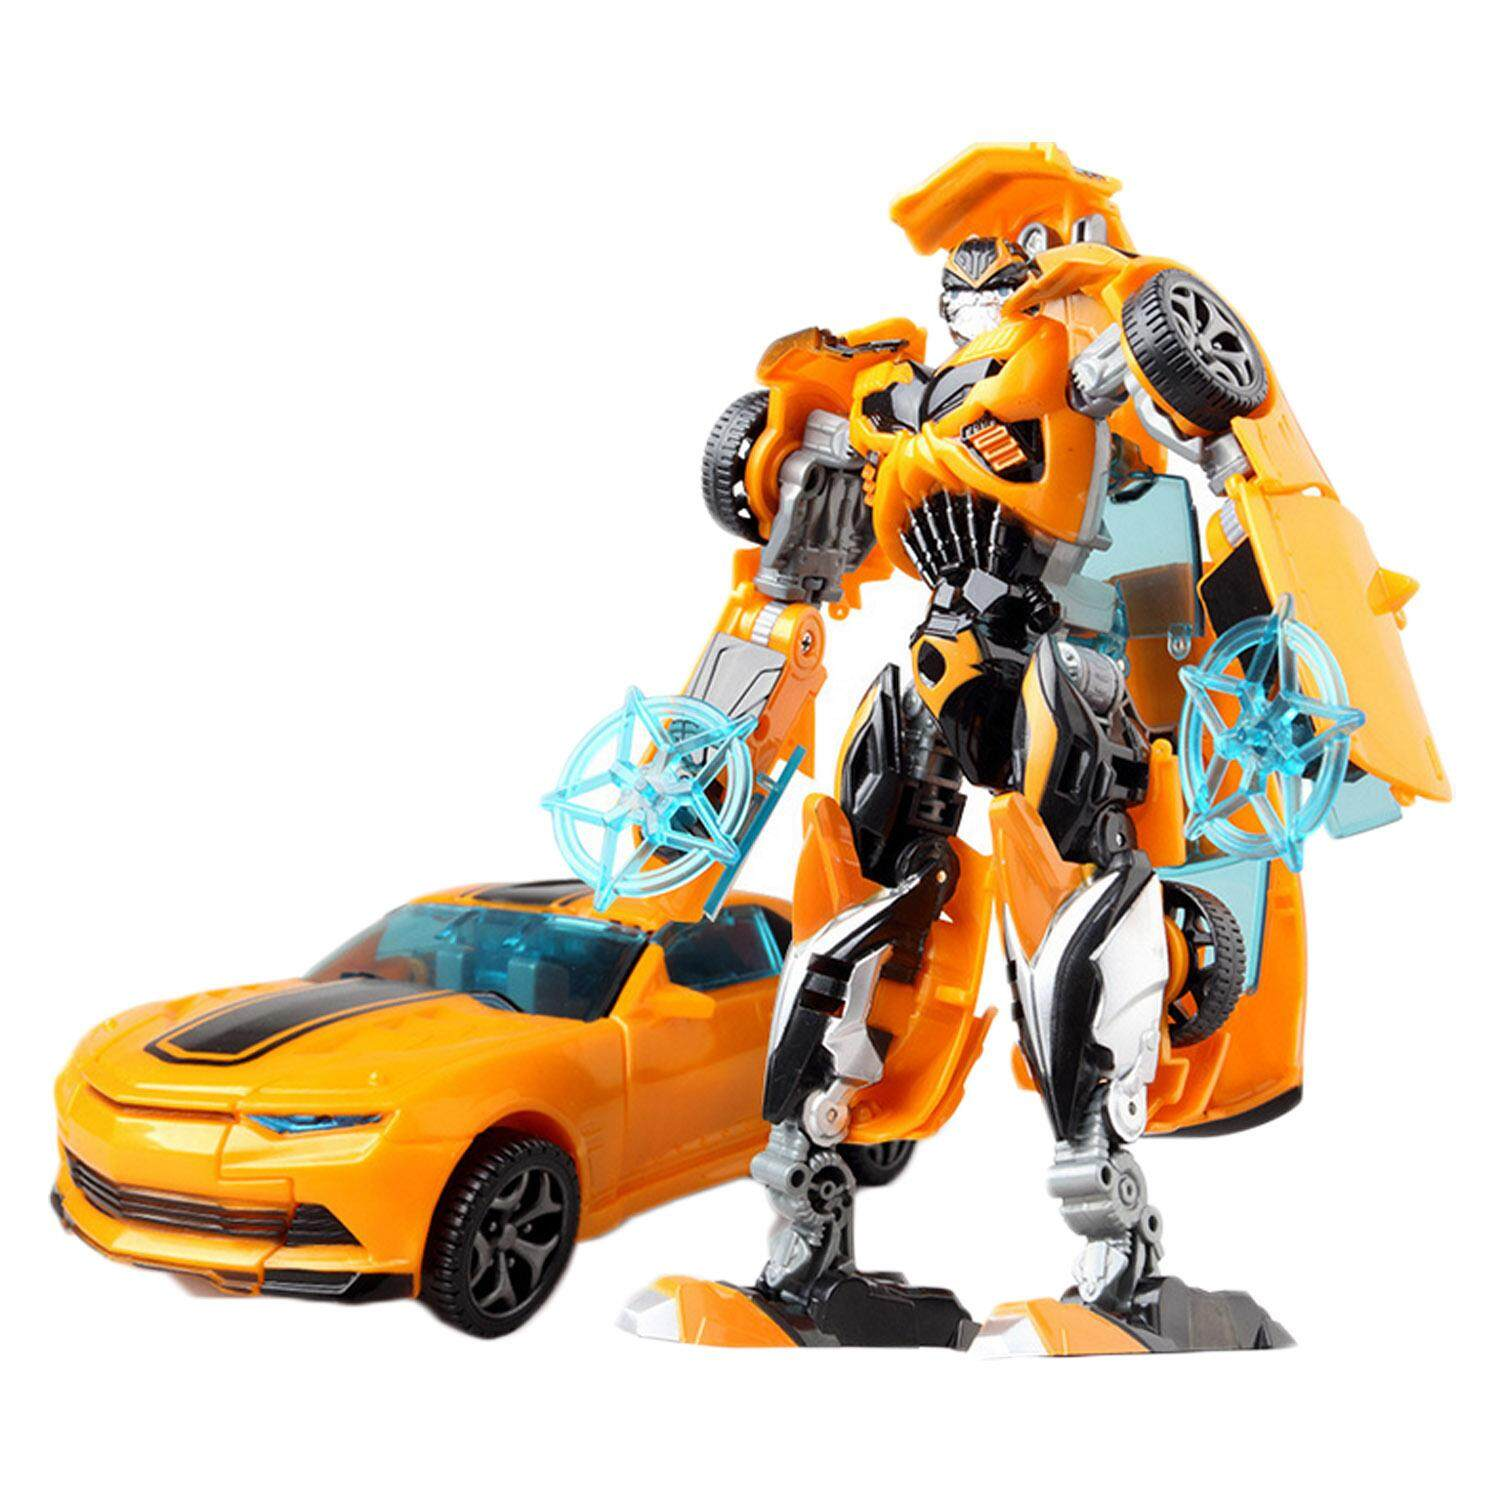 Transformers Robot Toys Transformable Car People Toy For Child Children Kids Early Education Bumblebee - Intl By Stoneky.